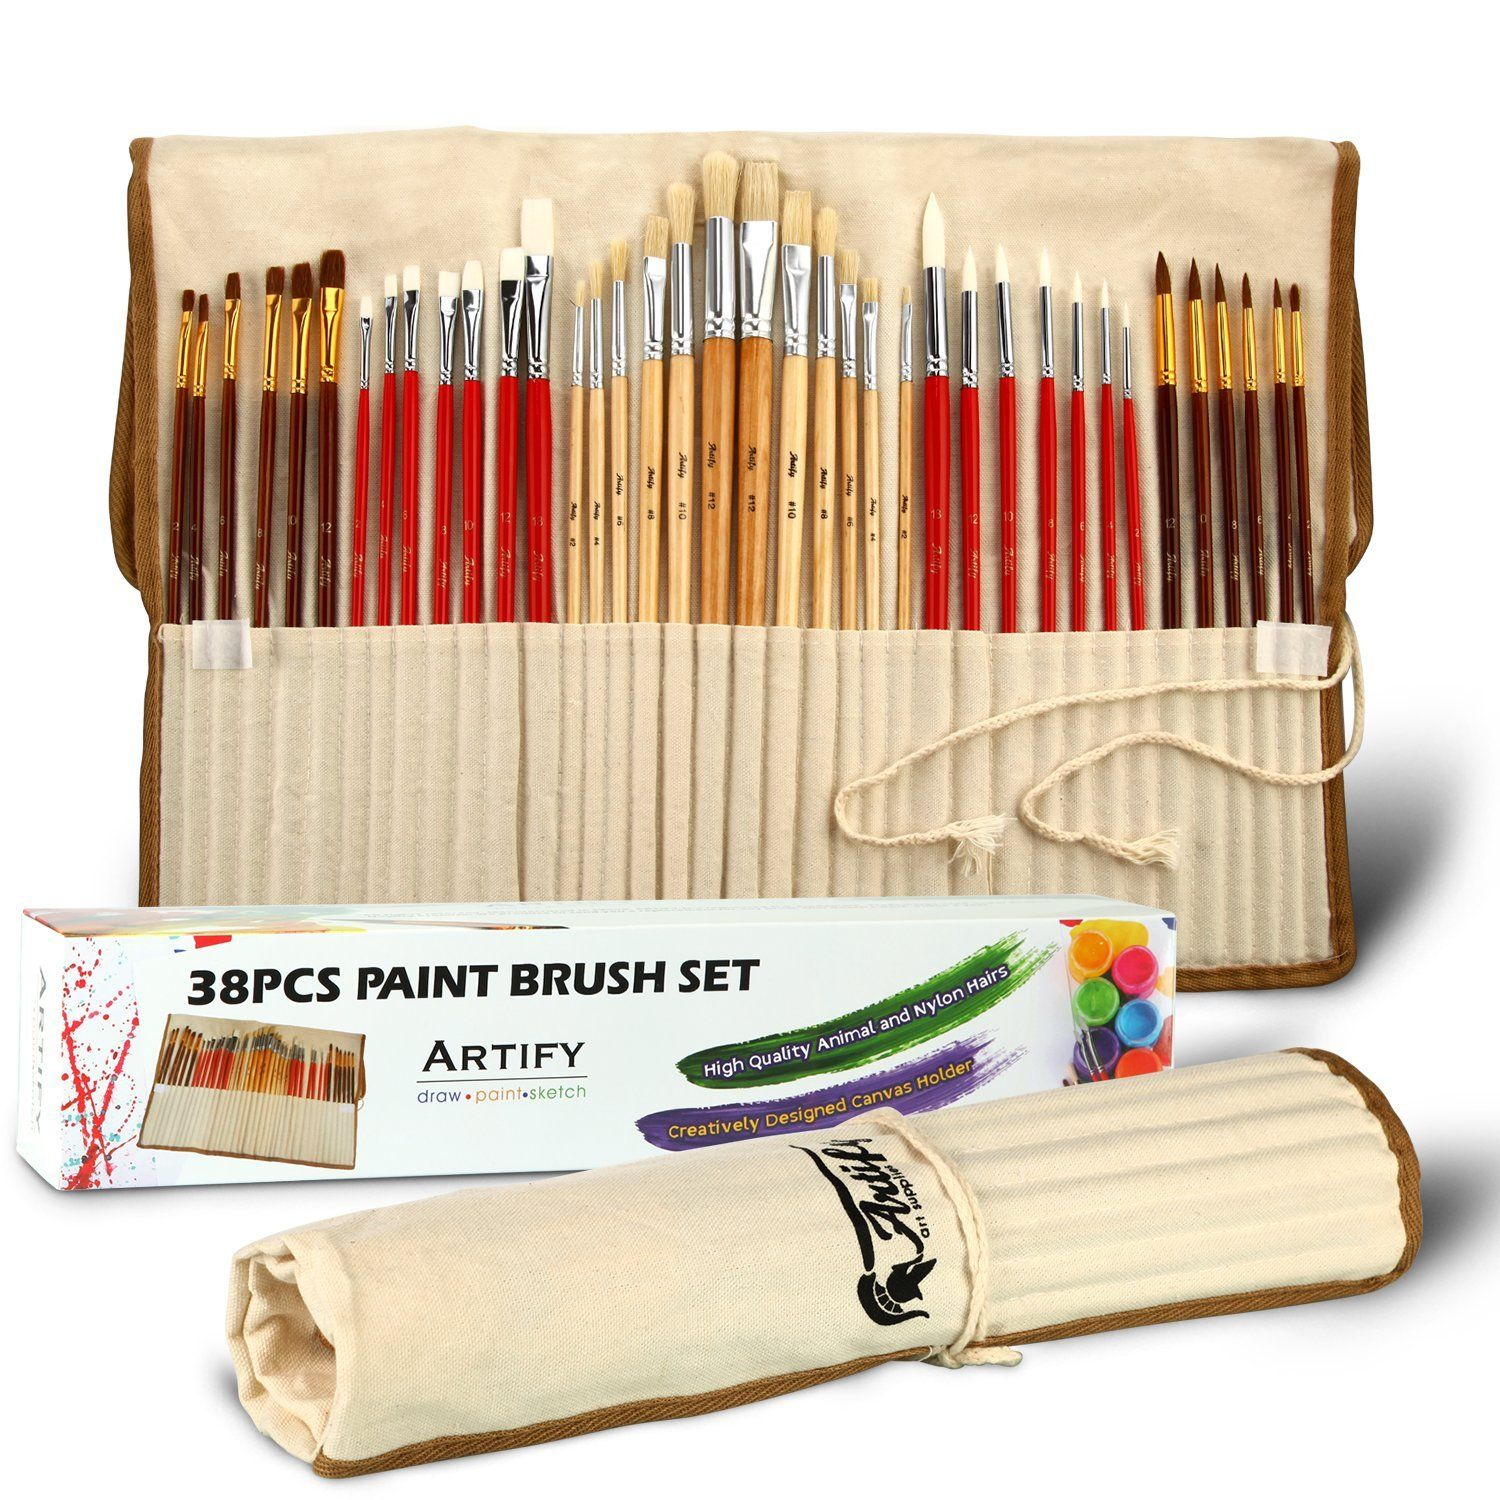 Excellent art brush set, Artify, water color brushes